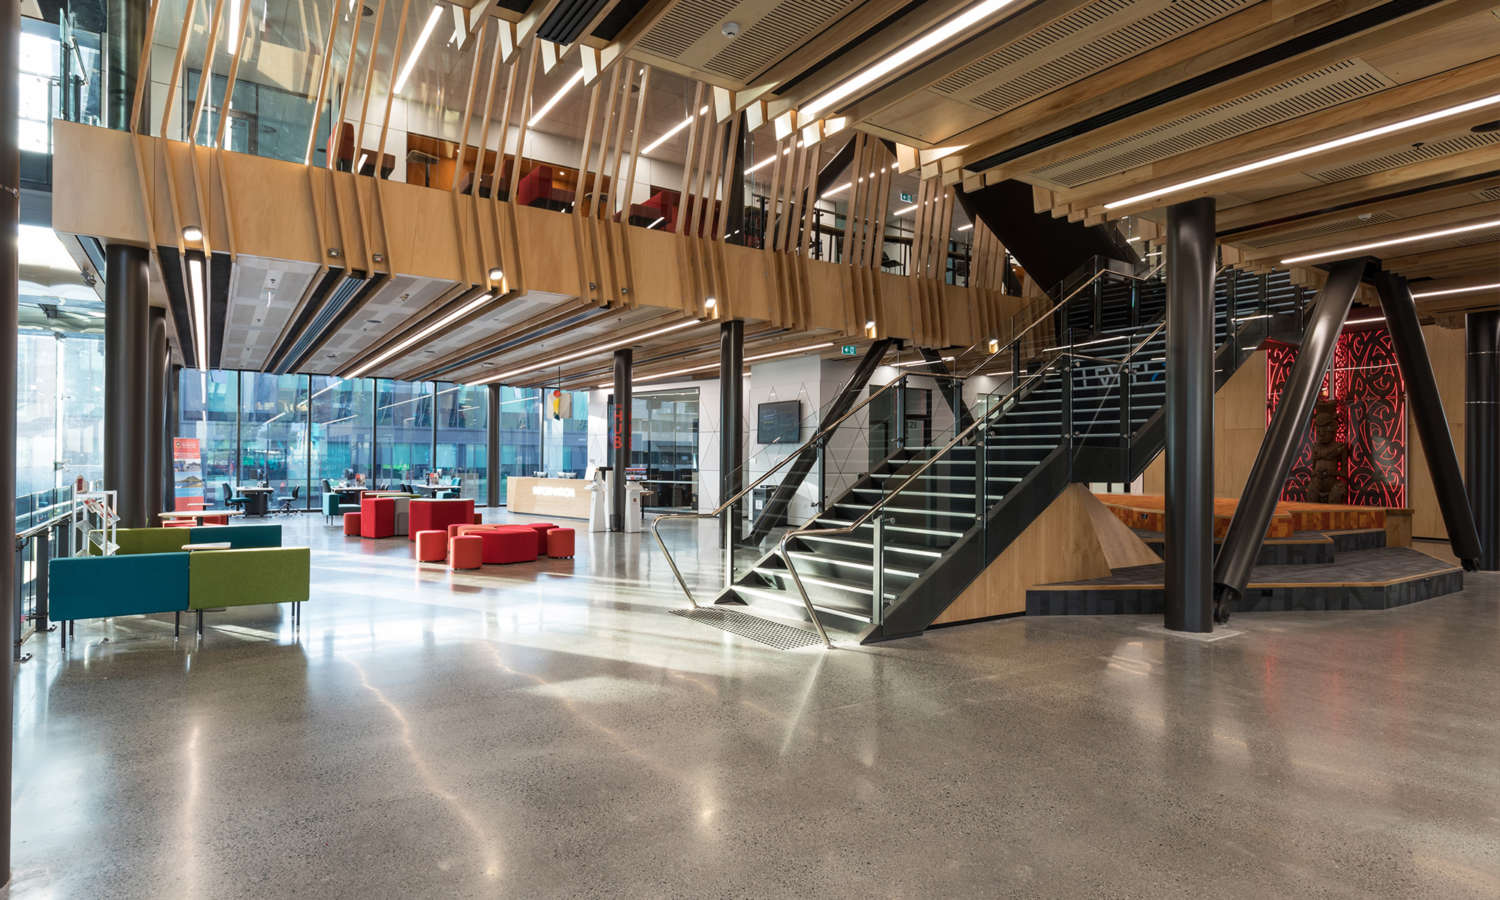 Commercial Office Fit Out Projects, workspace design | Crestline